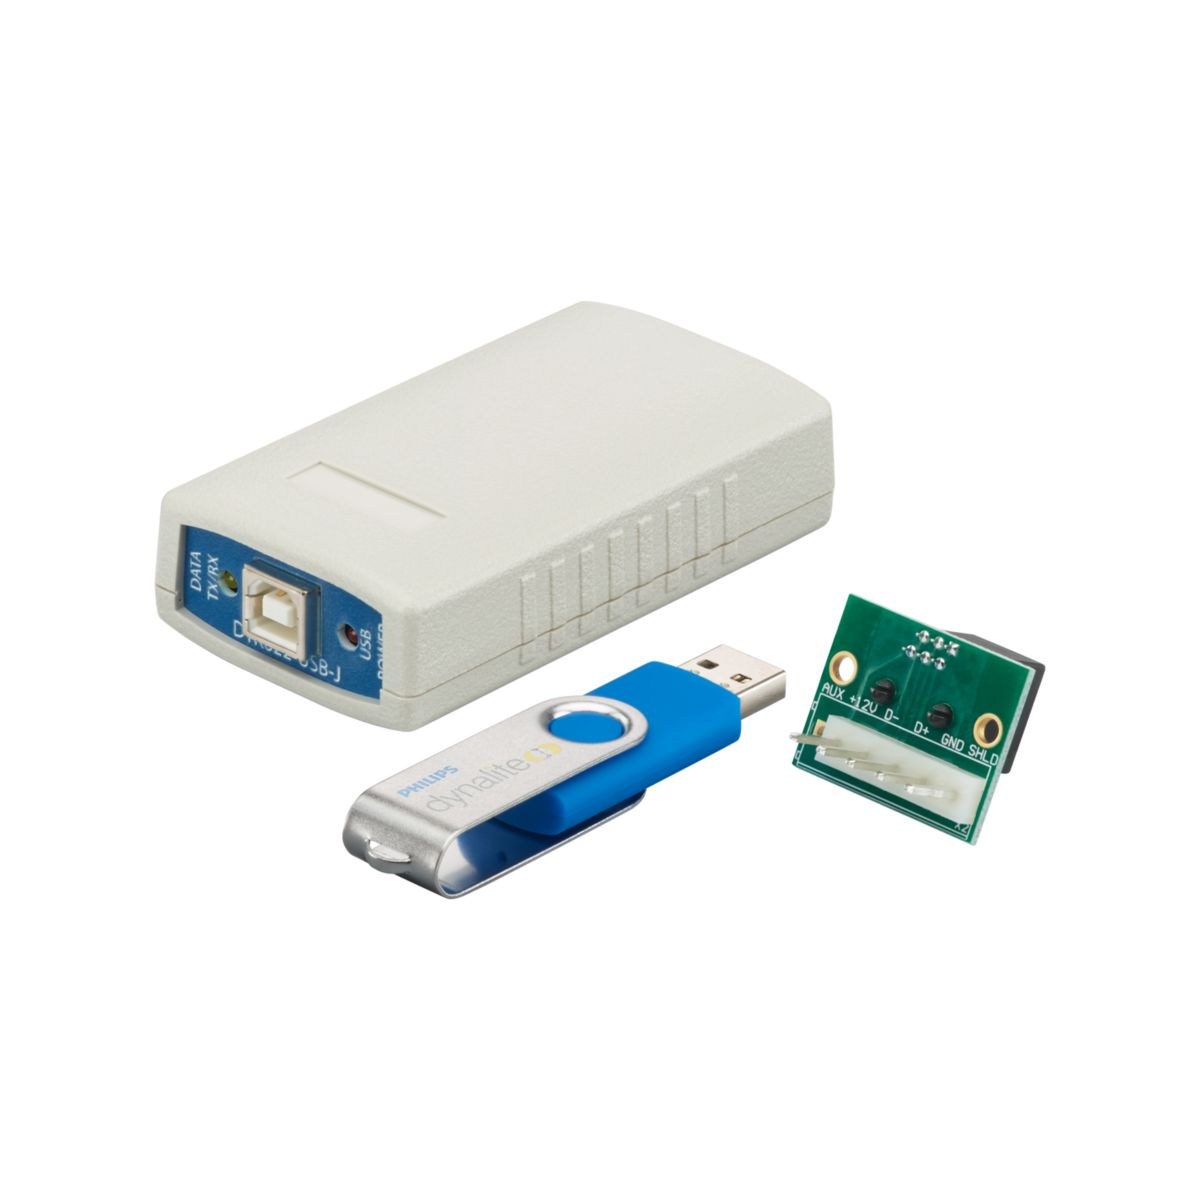 Dtk622 Usb Dynalite Network Devices Philips Lighting 21cn4462 Circuit Diagram Scaricare